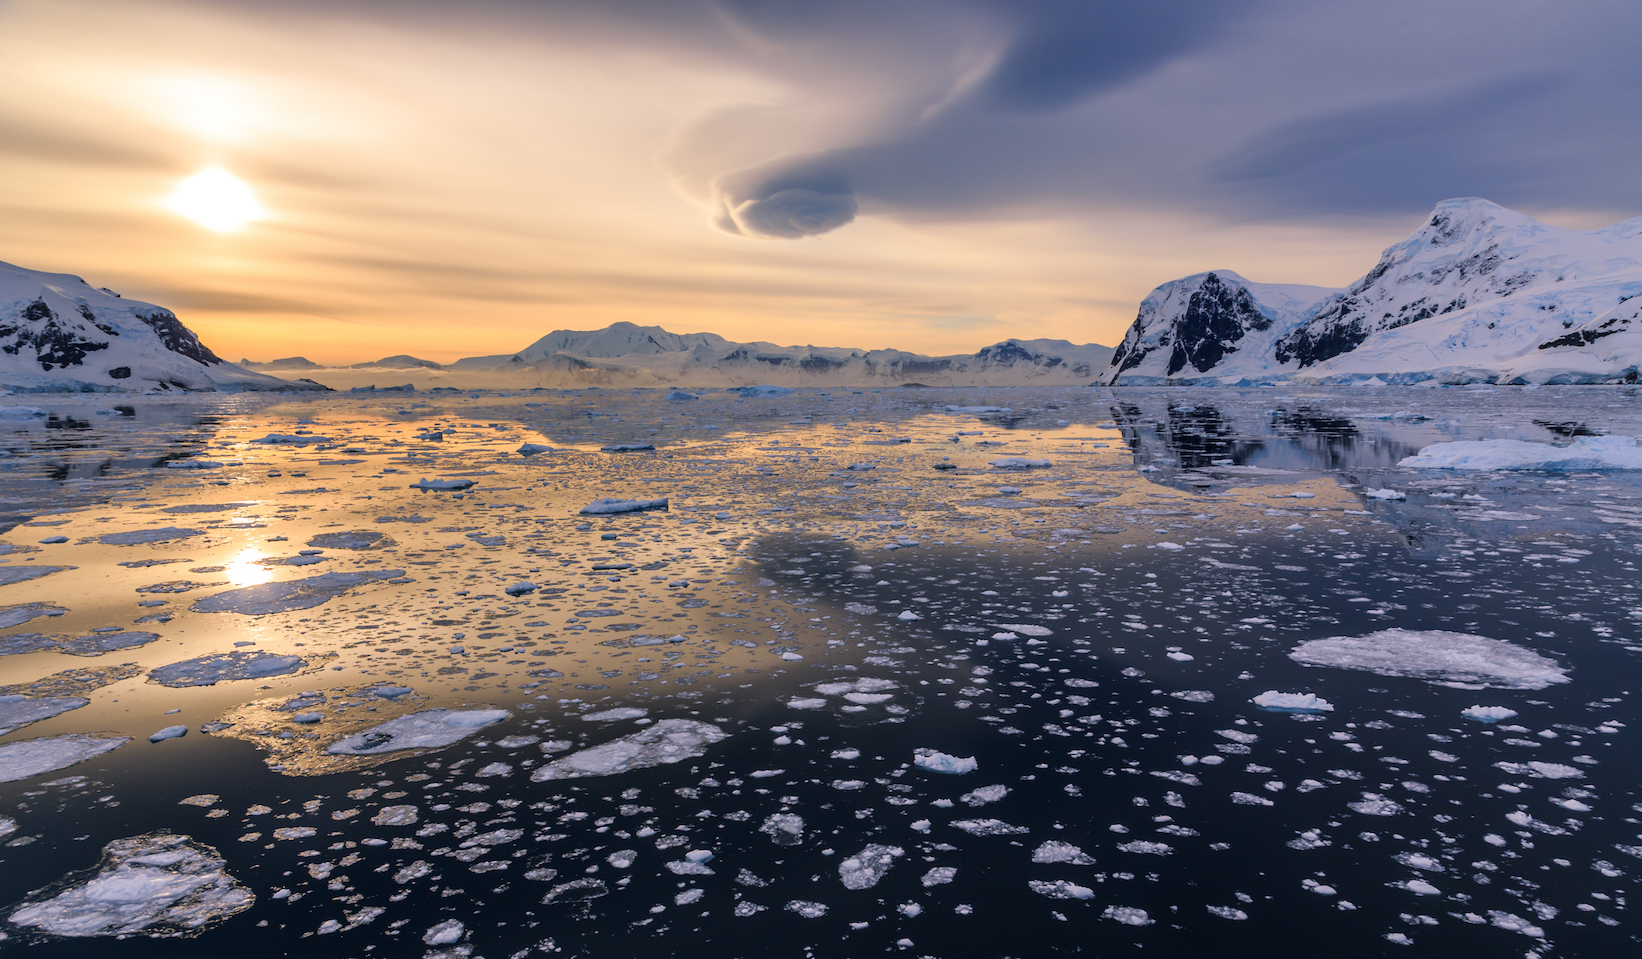 Antarctica and the Southern Ocean are in no in better shape ecological shape than the rest of the world, according to a new study.